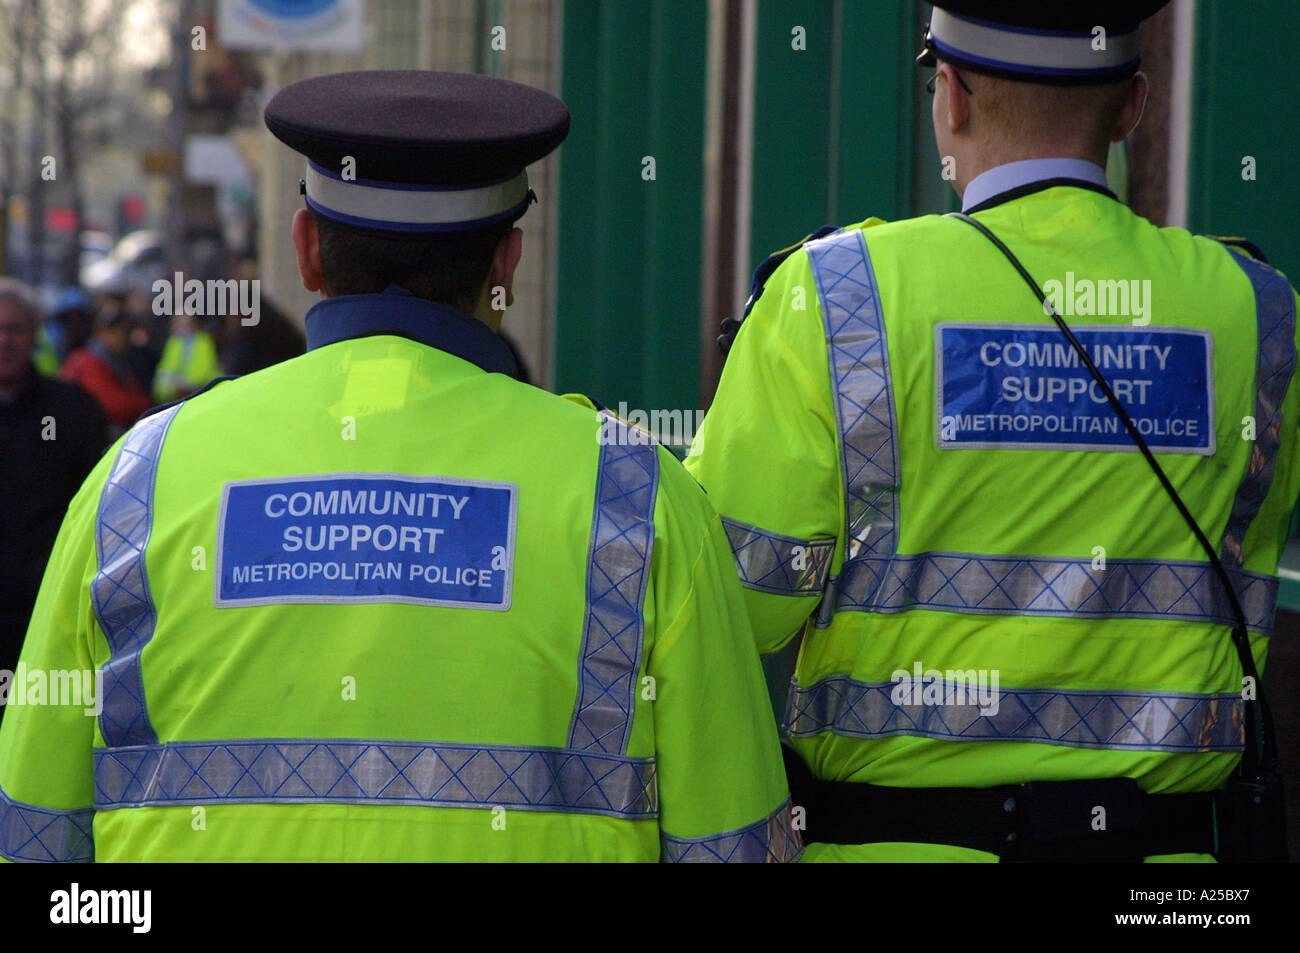 community support officers in the metropolitan police - Stock Image